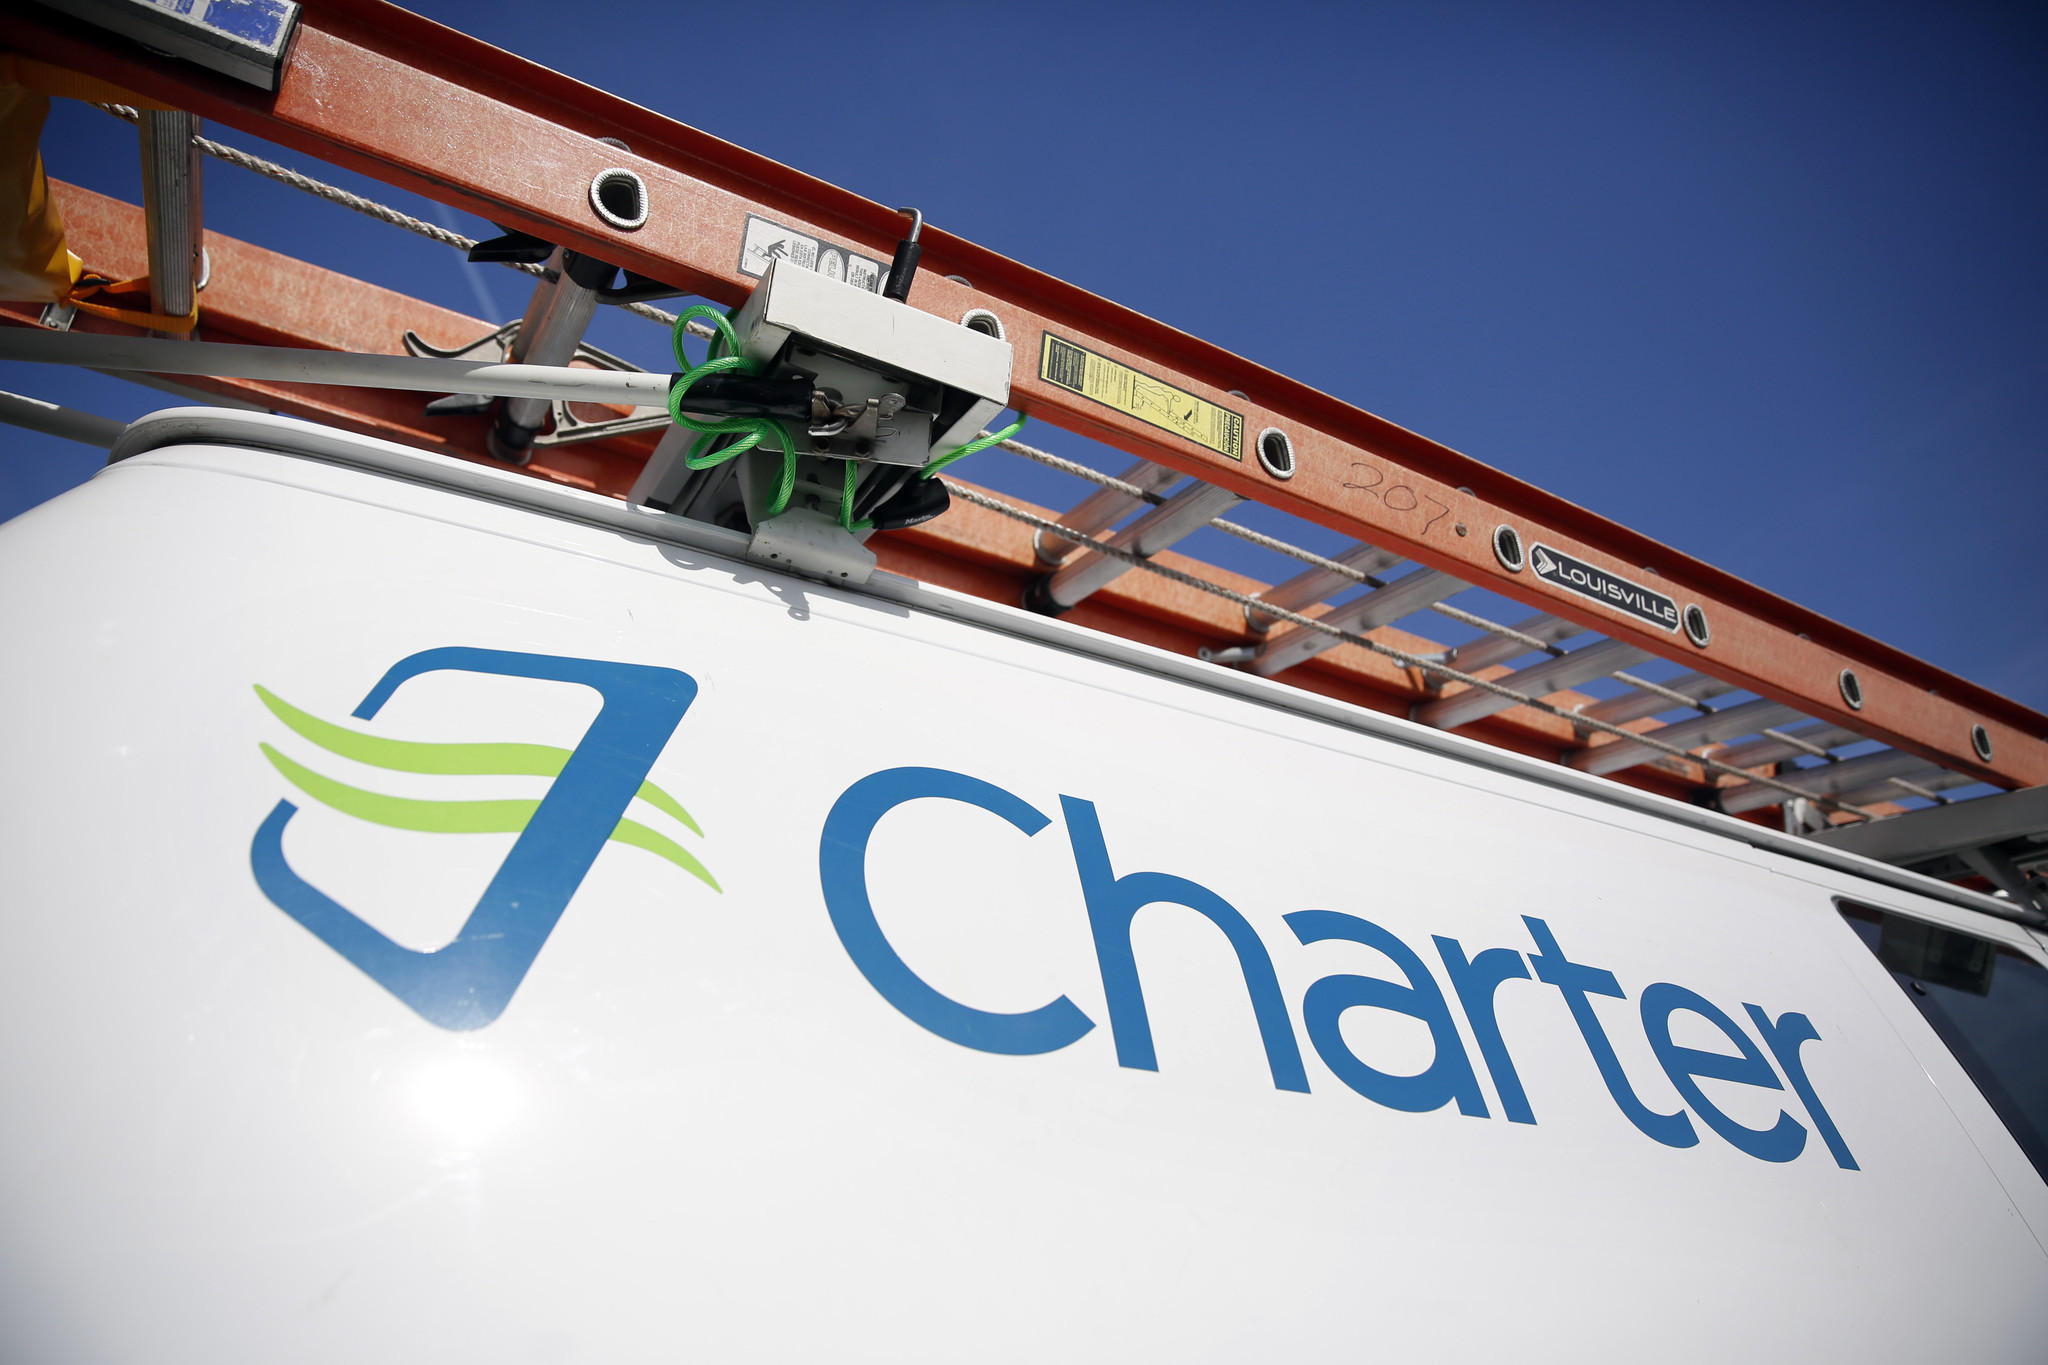 Charter Communications abuses customer rights, wins approval for big cable merger anyway - LA Times